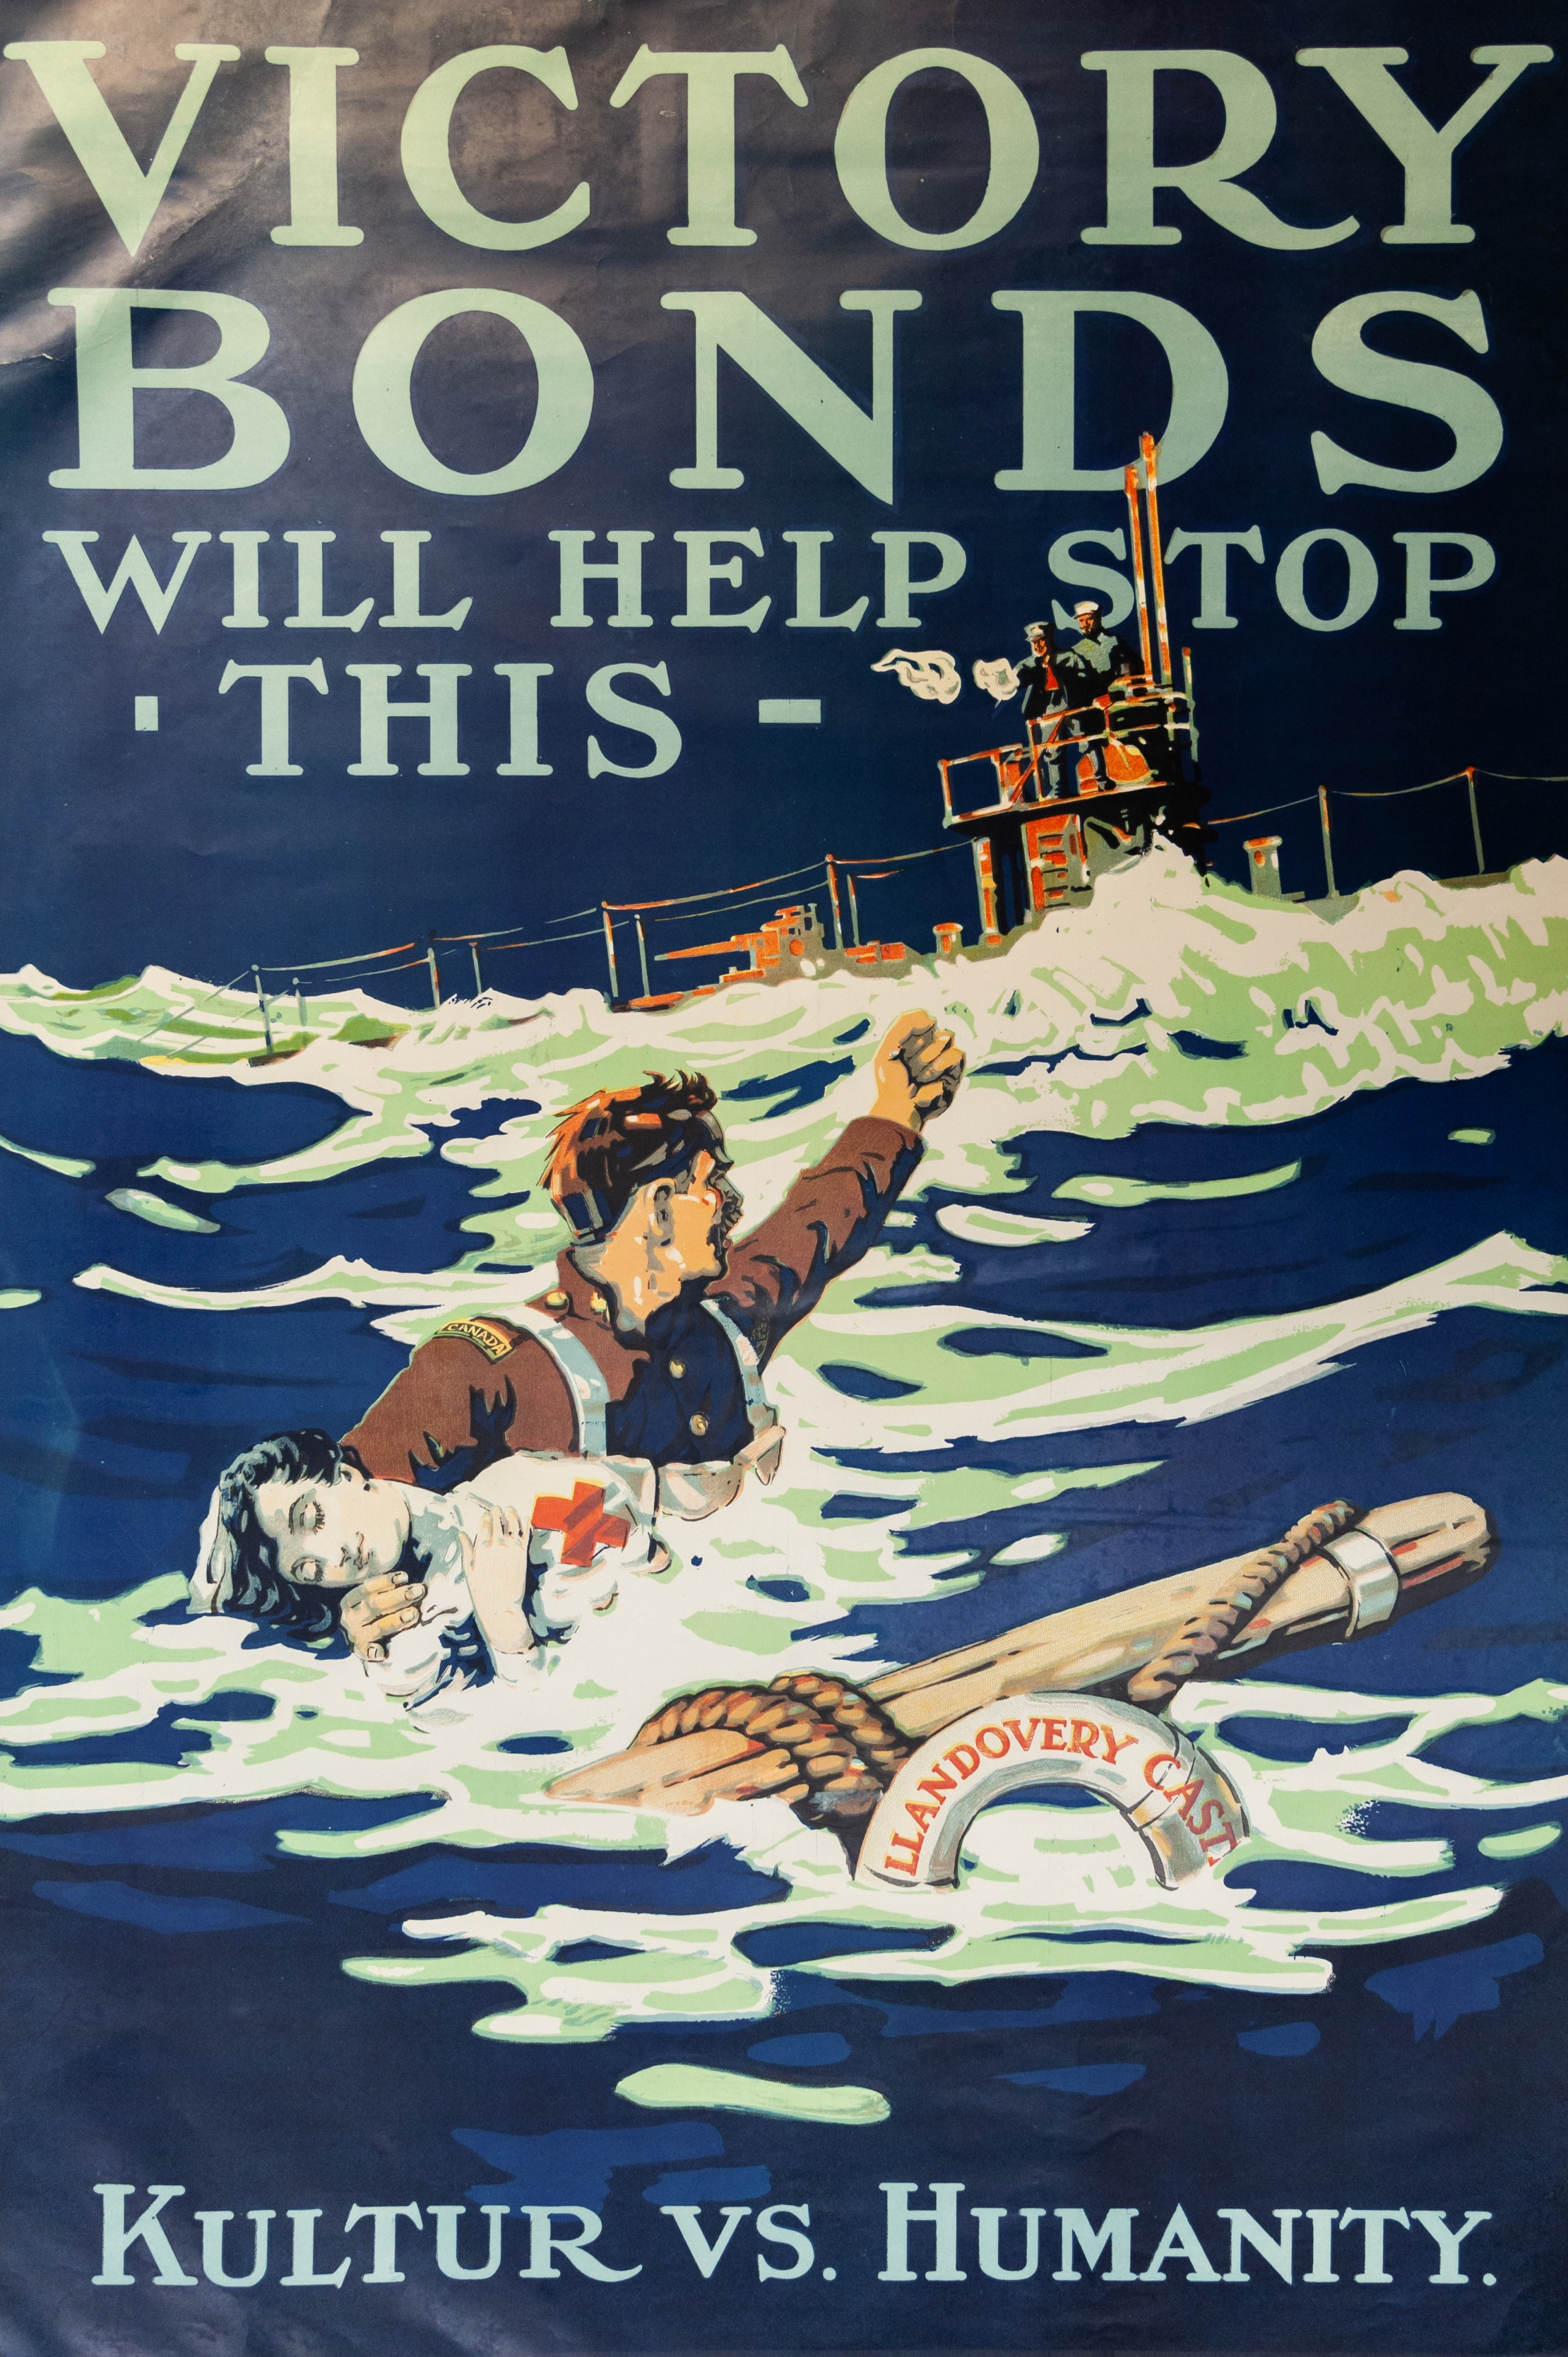 """Victory Bonds Will Help Stop This. Kultur Vs. Humanity"" poster, no.WP2, First World War poster collection"